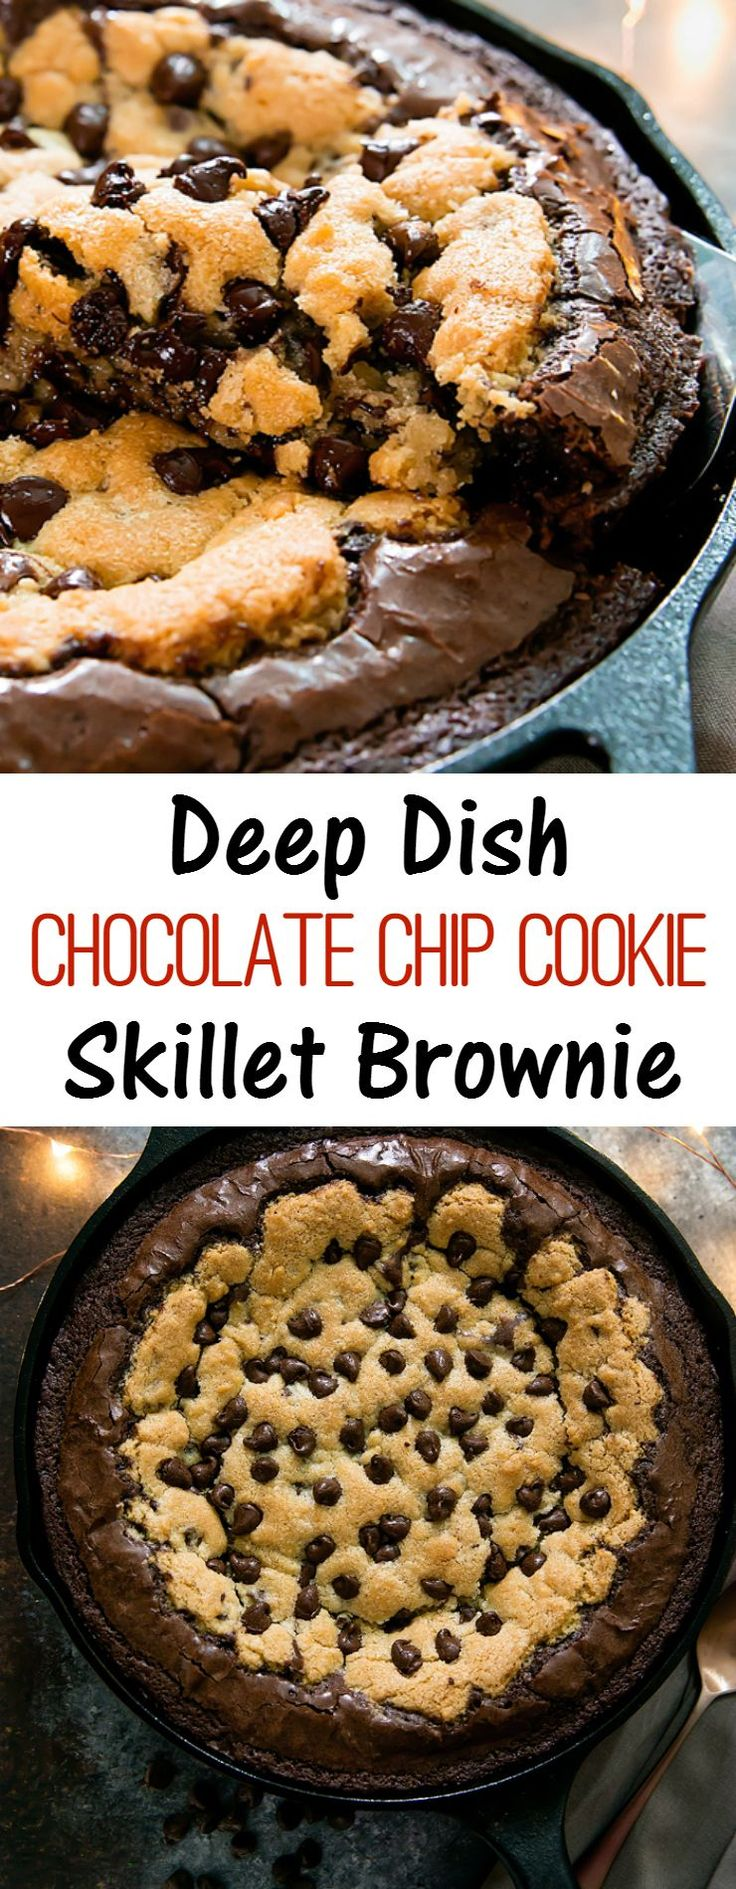 Today I'm sharing two fun dessert recipes combining chocolate chip cookies and brownies which I created in partnership with J. M. Smucker…